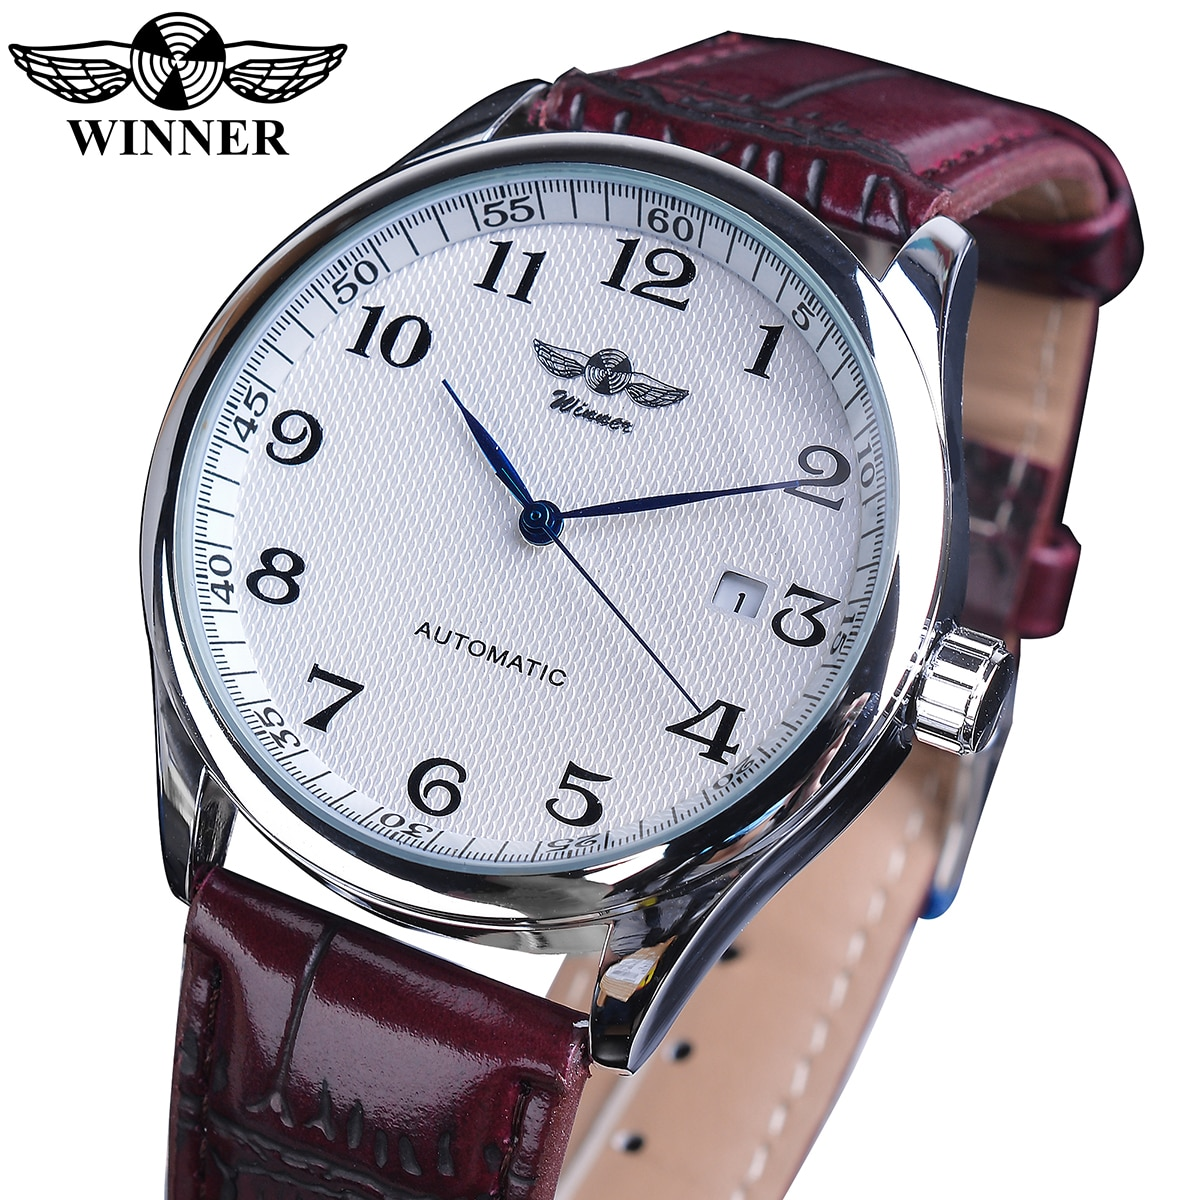 Winner Retro Classic Design White Silver Mechanical Watch Leather Band Automatic Clock Business Man